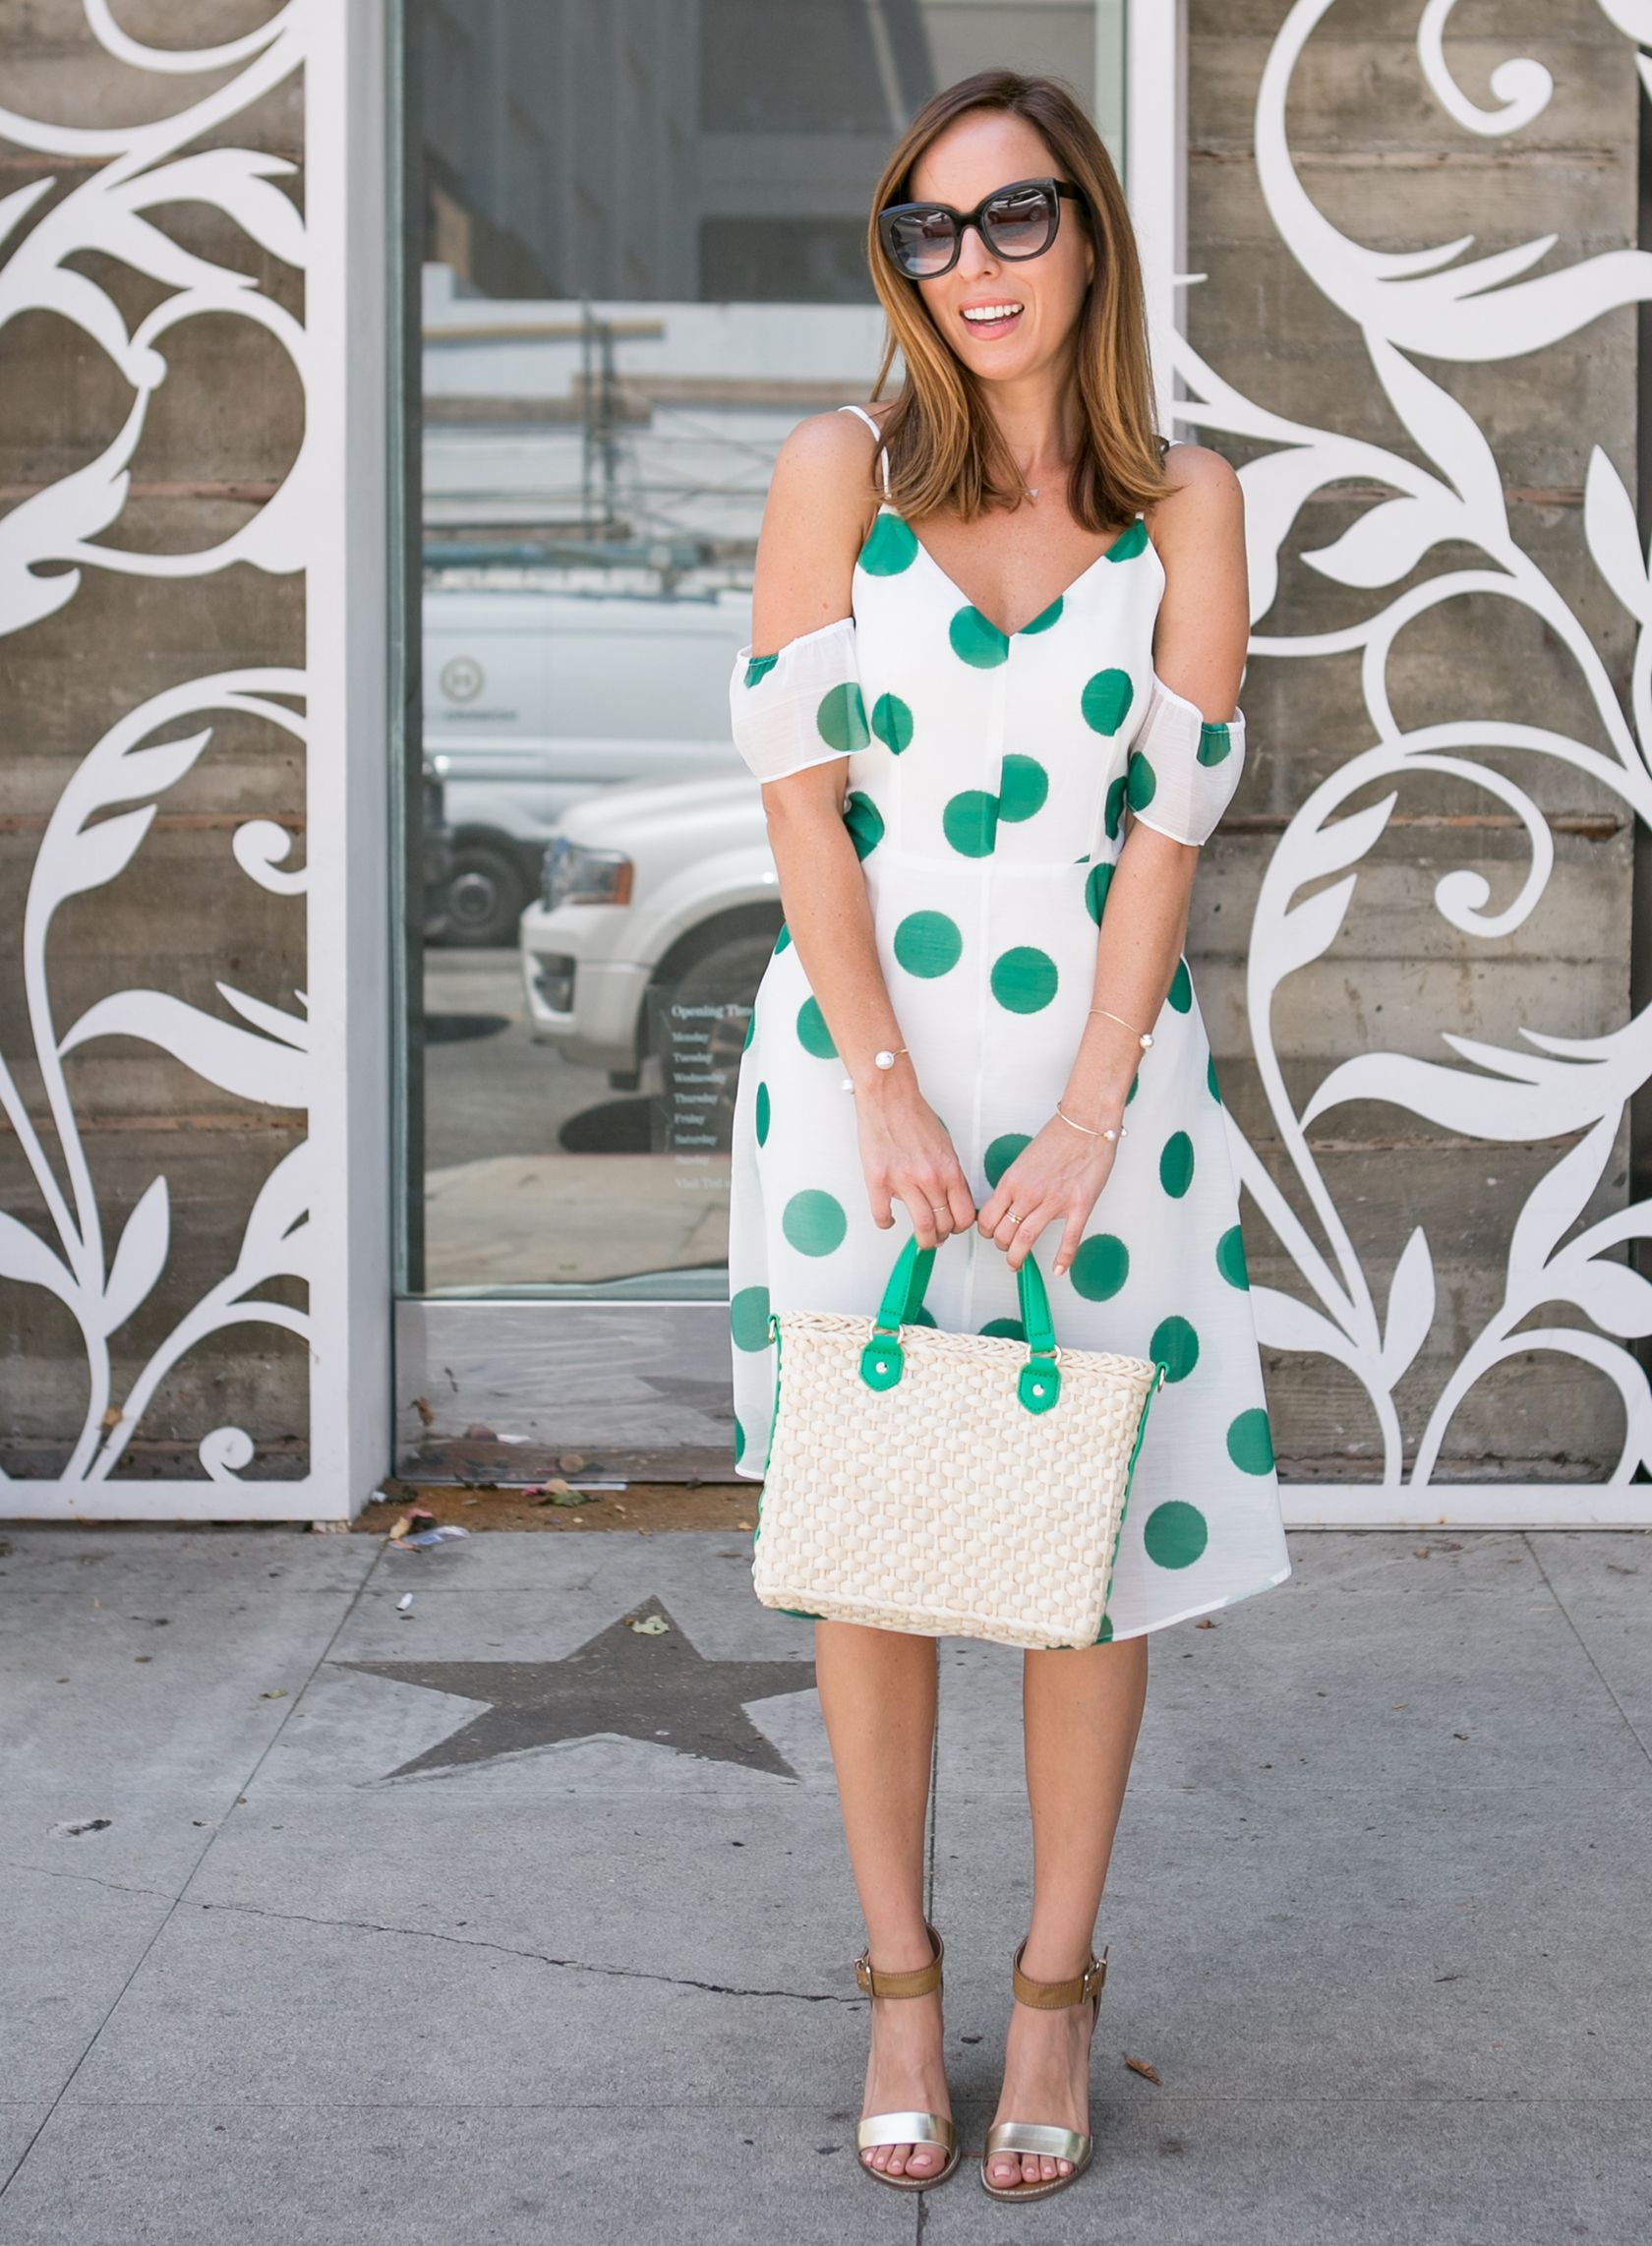 9d81af2700206 Sydne Style wears line and dot green polka dress for summer outfit ideas